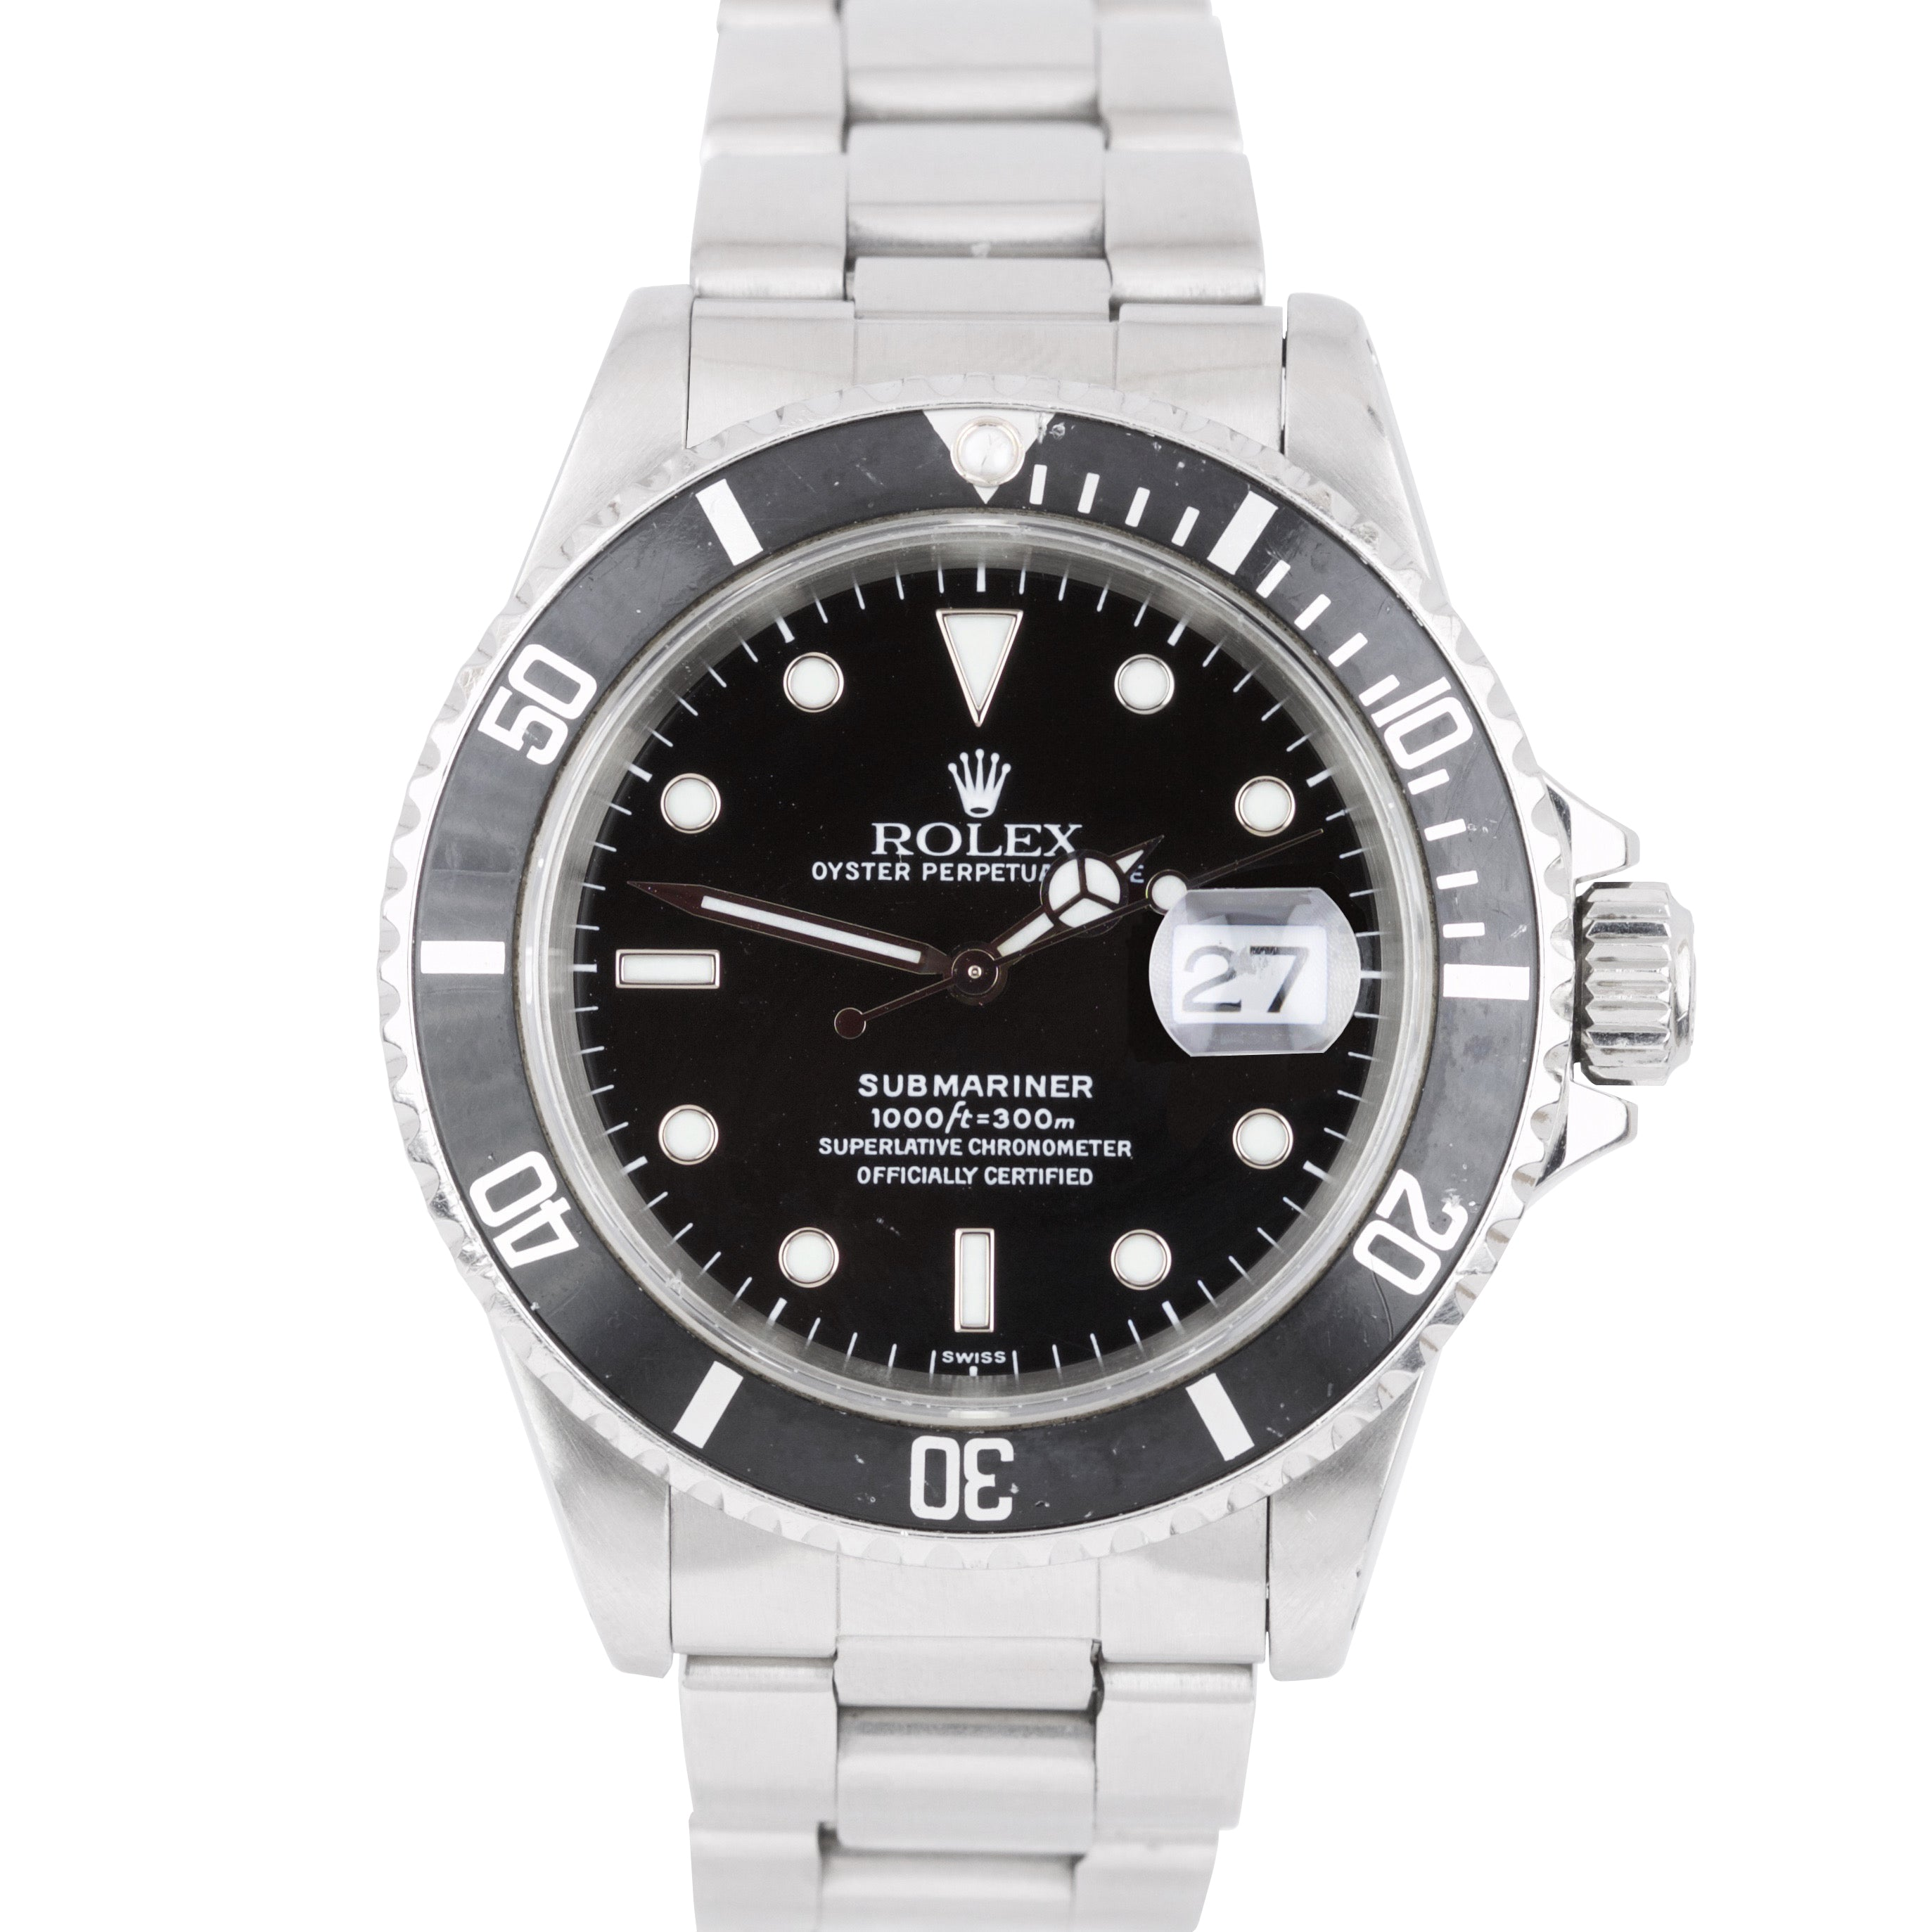 1999 Rolex Submariner Date U-SERIAL 16610 SWISS ONLY Stainless 40mm Dive Watch